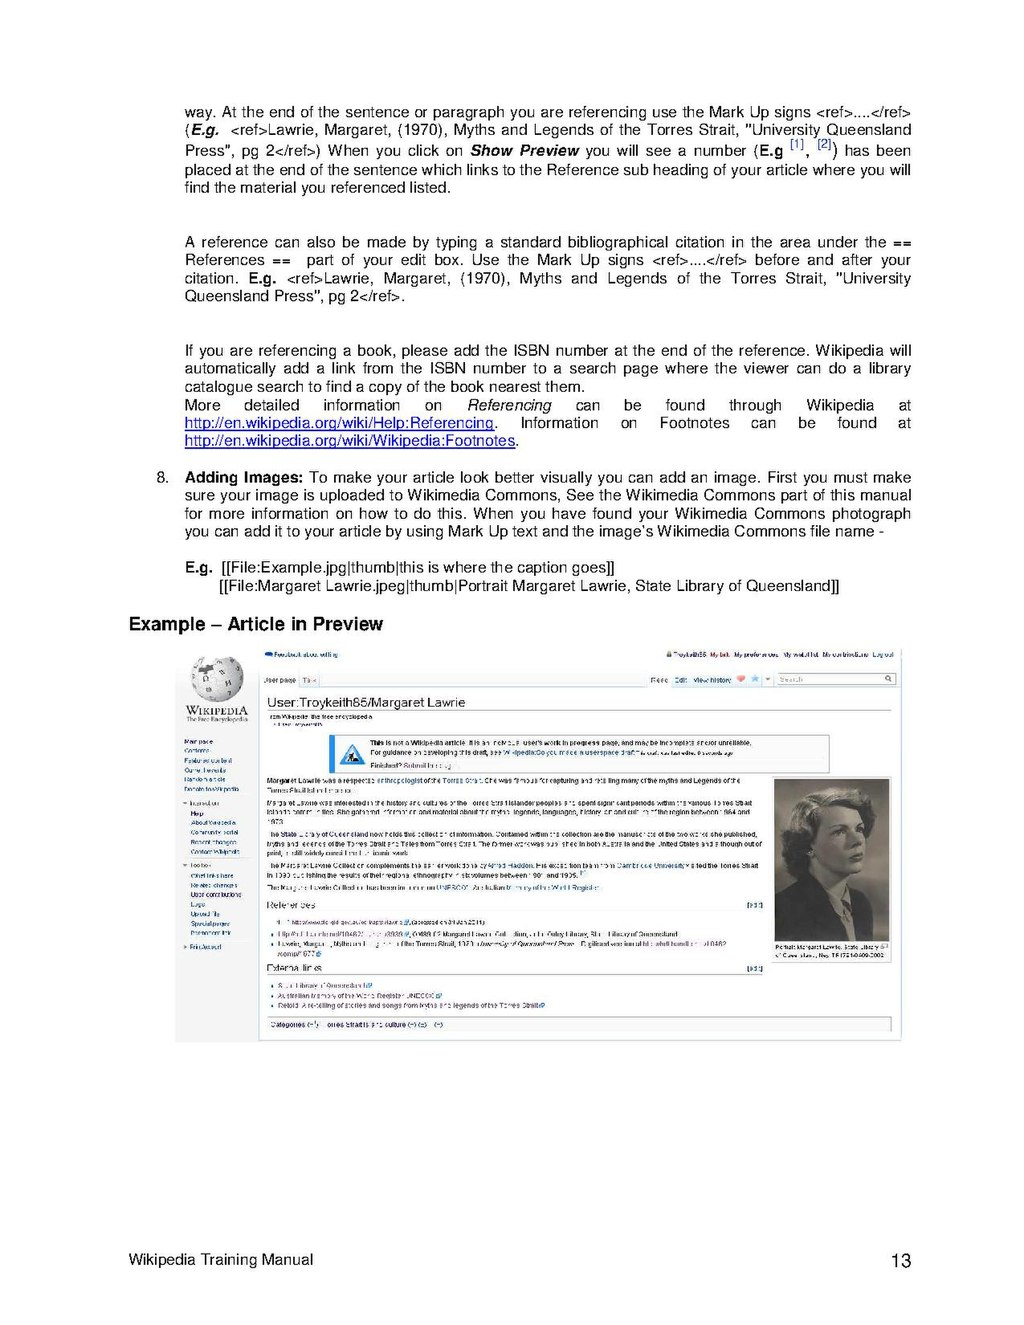 page wikipedia training manual pdf 13 wikisource the free online rh en wikisource org PC Manual Reference Ataaps Users Reference Manual